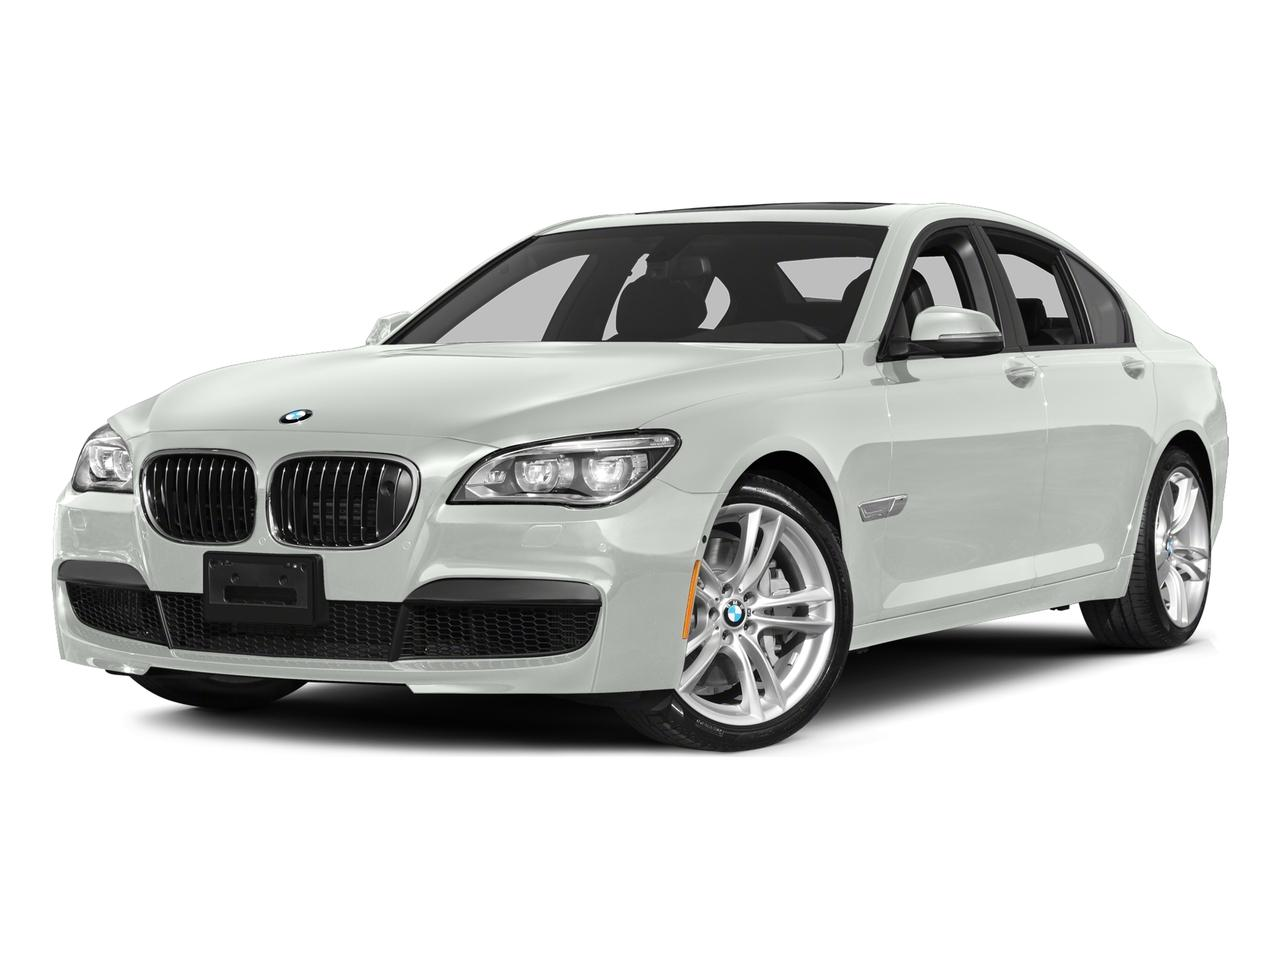 2015 BMW 750Li Vehicle Photo in Pleasanton, CA 94588